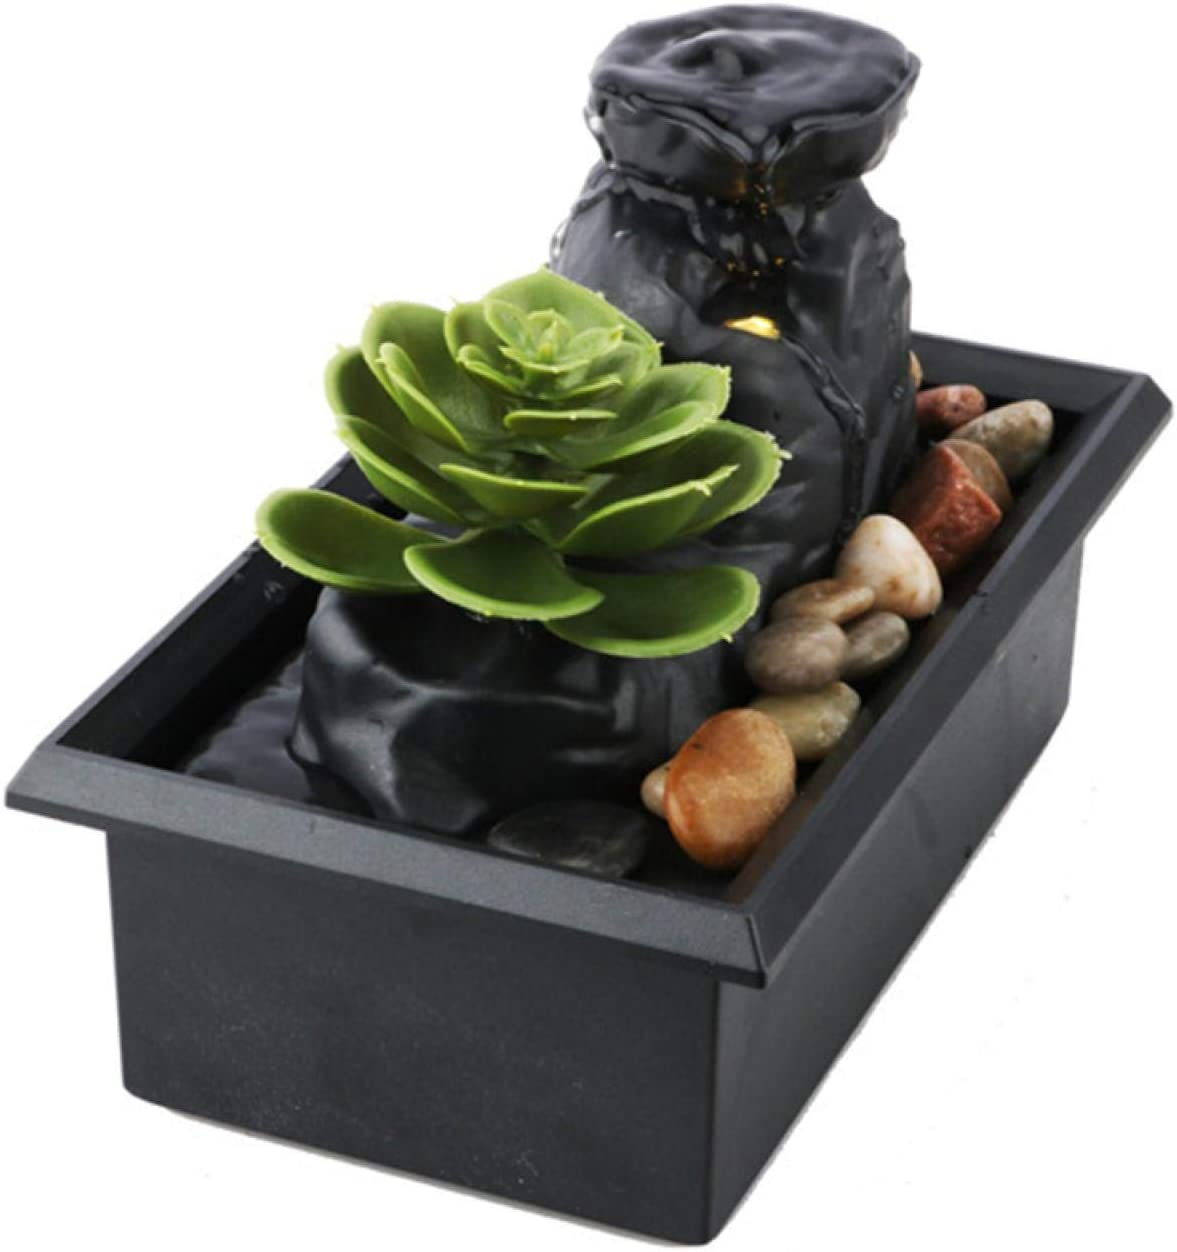 Tabletop Water Fountain,Feng Shui Zen Indoor Waterfall Fountain with LED Light for Home Office Decor